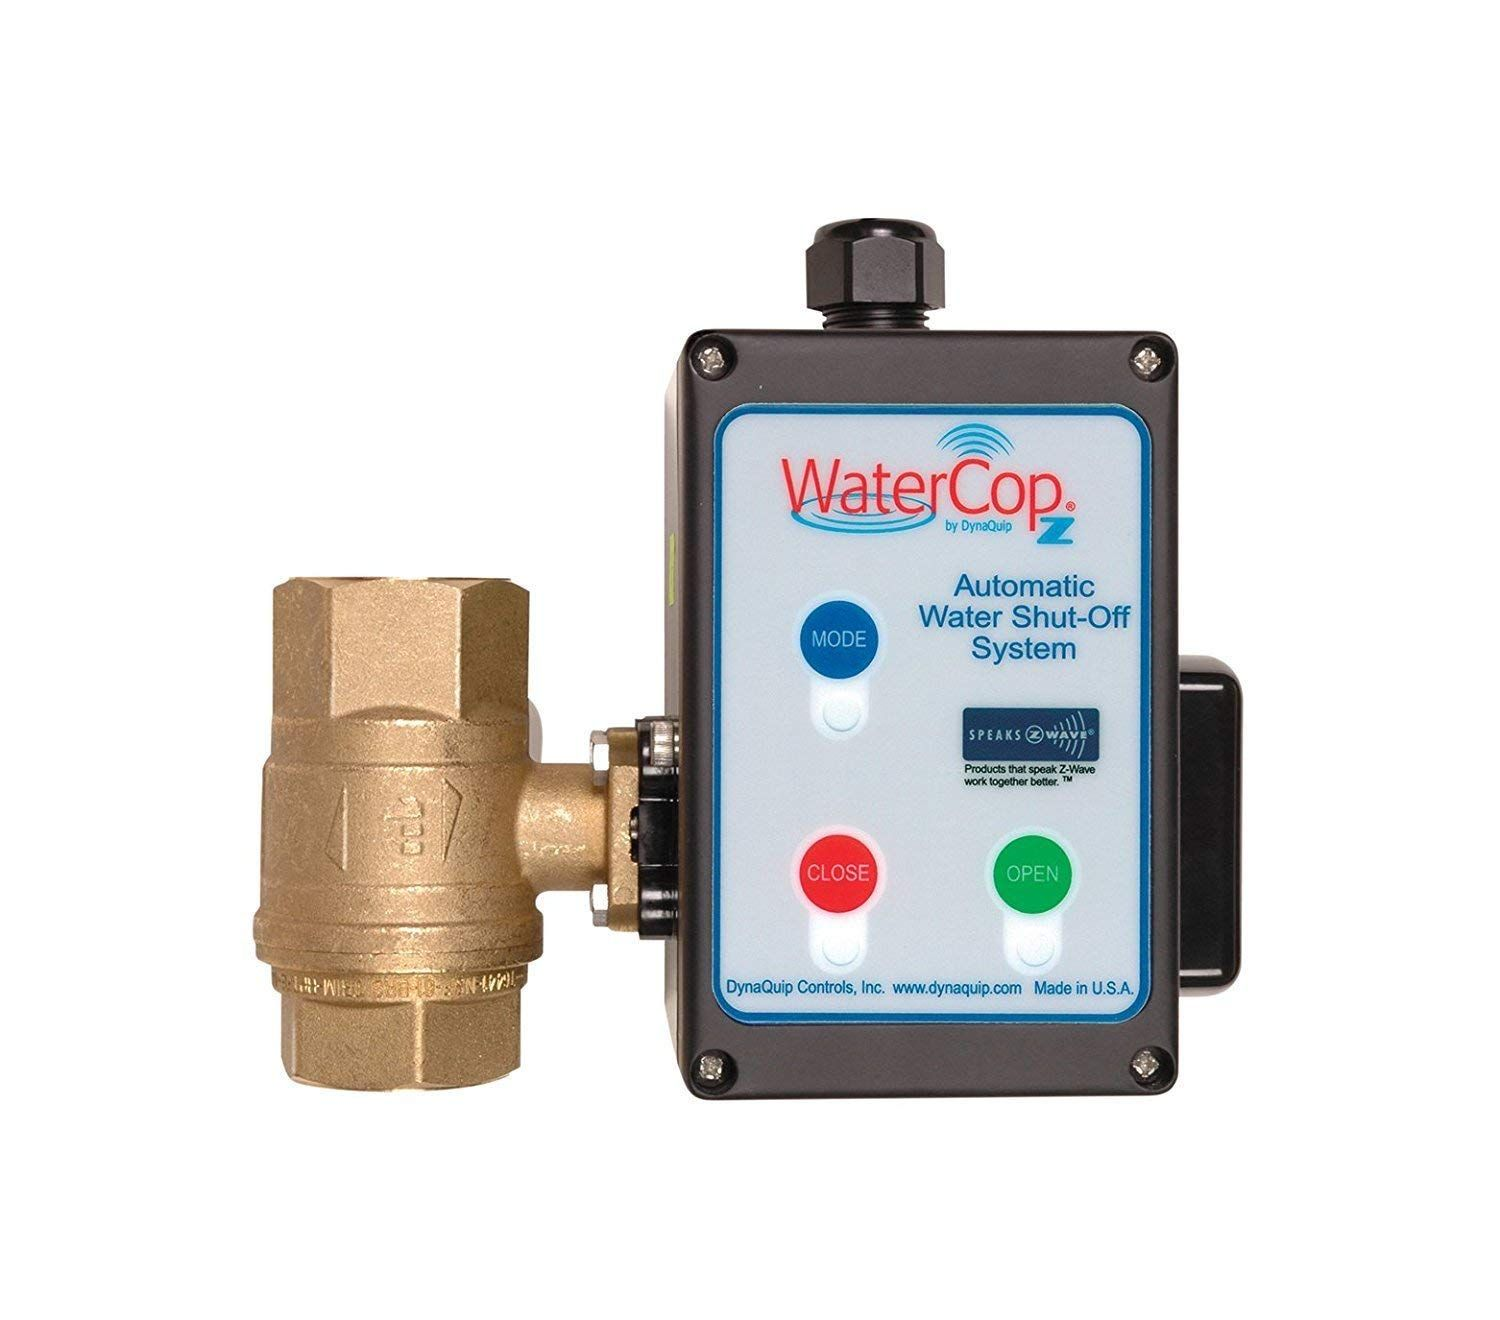 Watercop Z Wave Smart Water Shut Off Valve 1 1 4 Kit Actuator And 1 25 In Valve Leak Prevention Continue To The Product At The Image Flood Prevention Valve